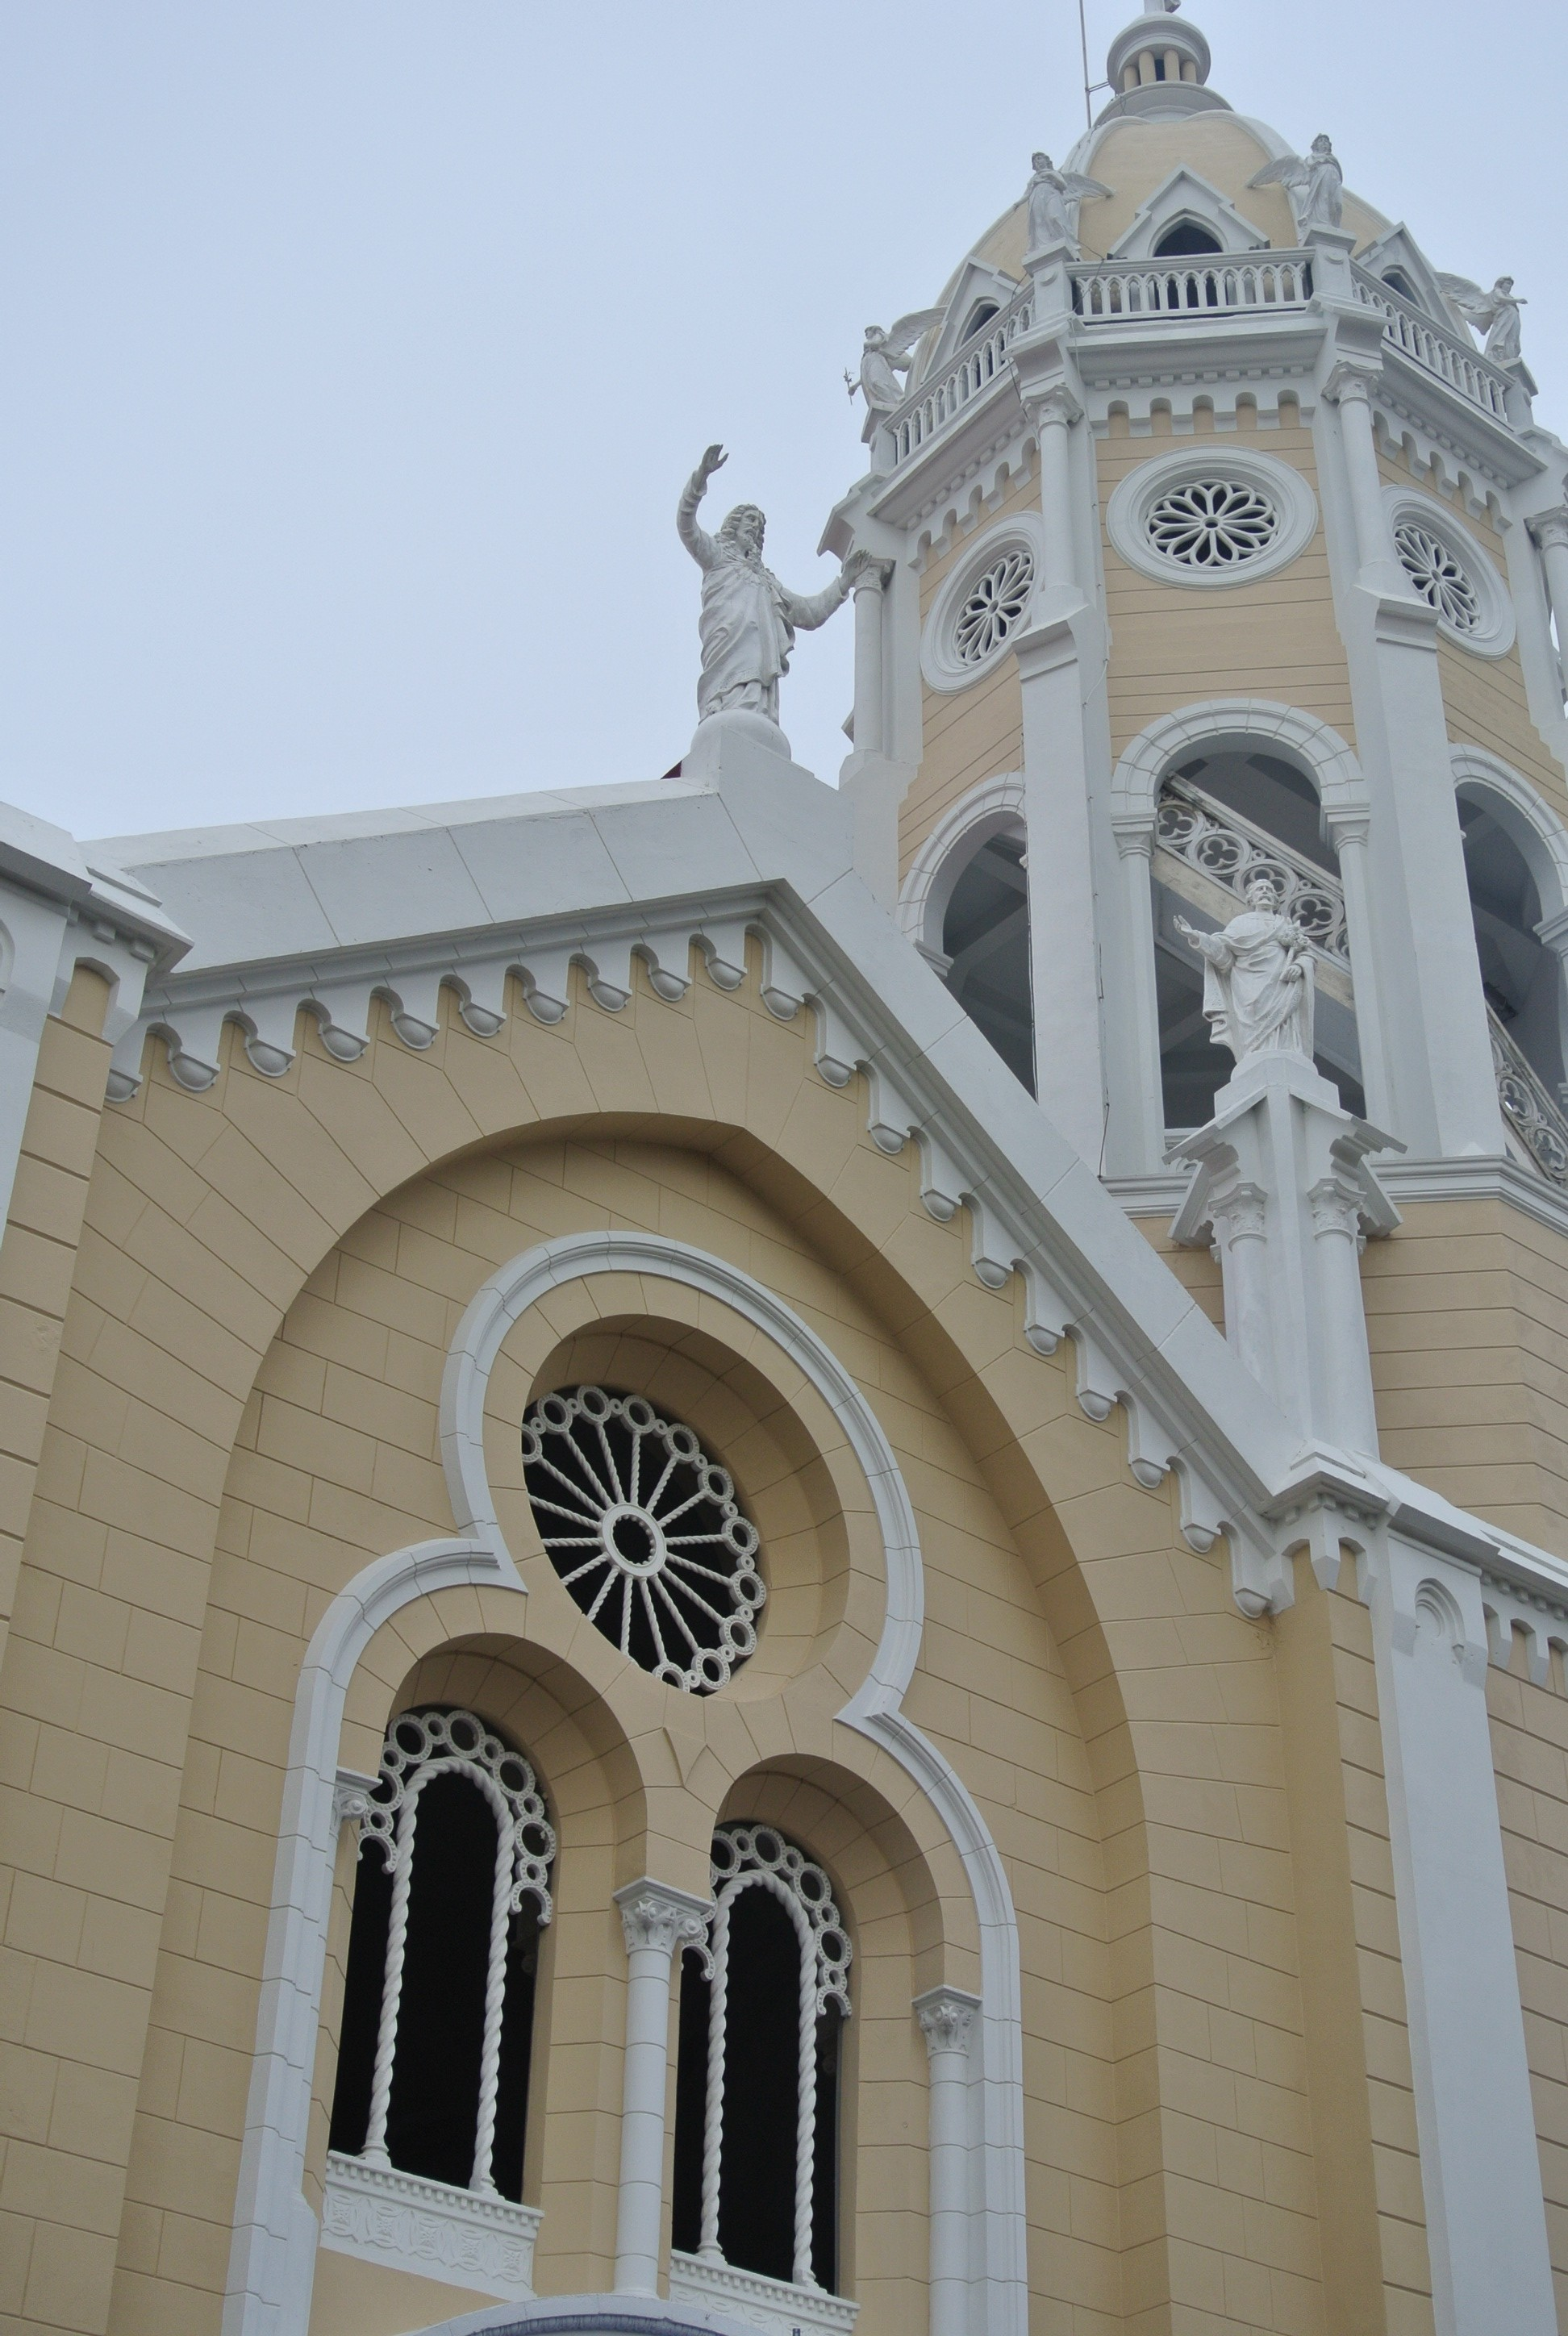 Just one example of the beautiful colonial architecture in Casco Viejo in Panamá